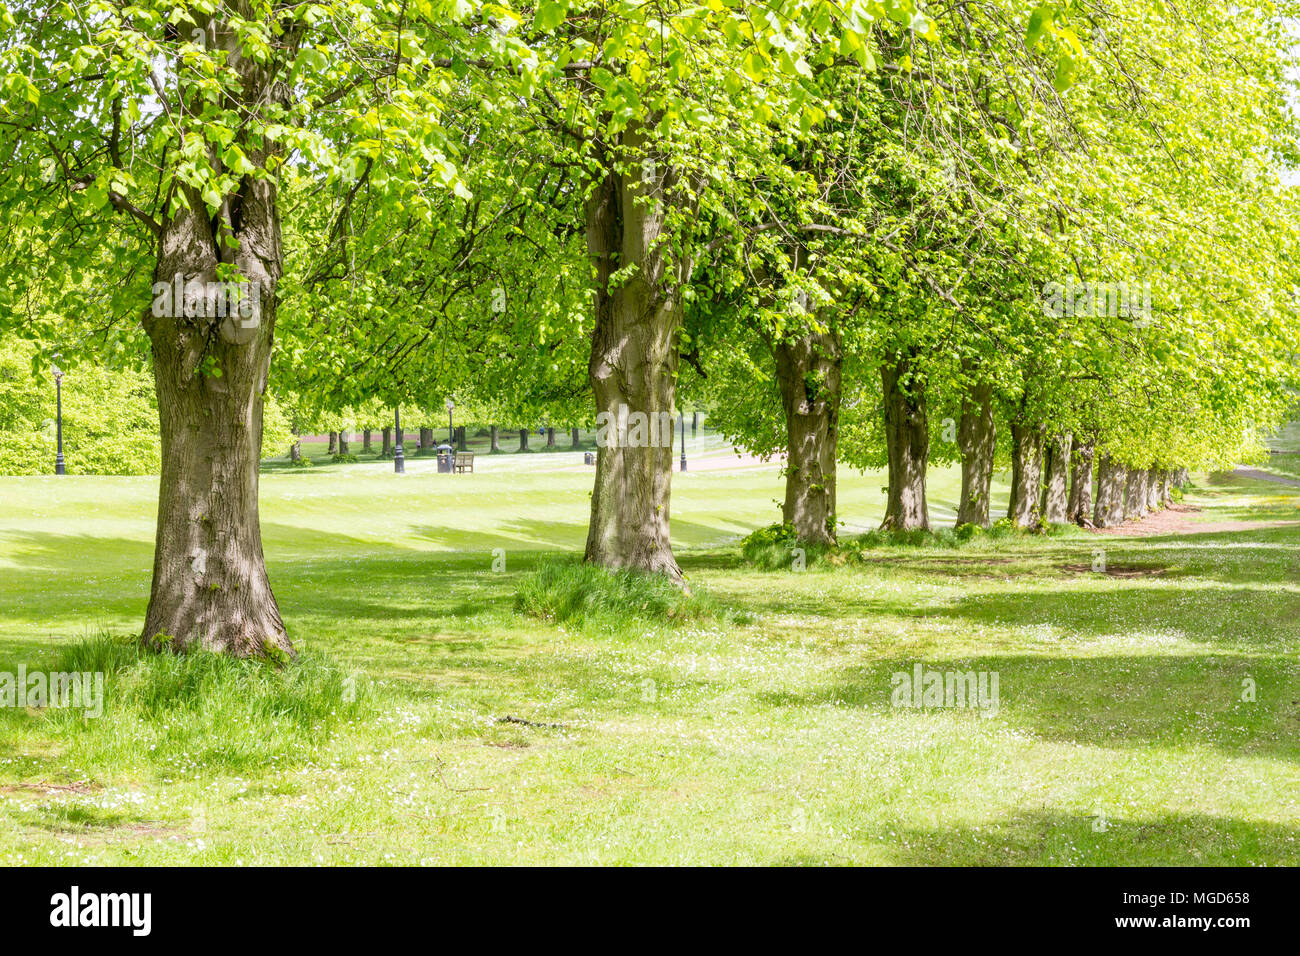 Belfast/N. Ireland - May 31, 2015: Trees line the Prince of Wales Avenue leading up to Parliament Buildings also known as Stormont. - Stock Image